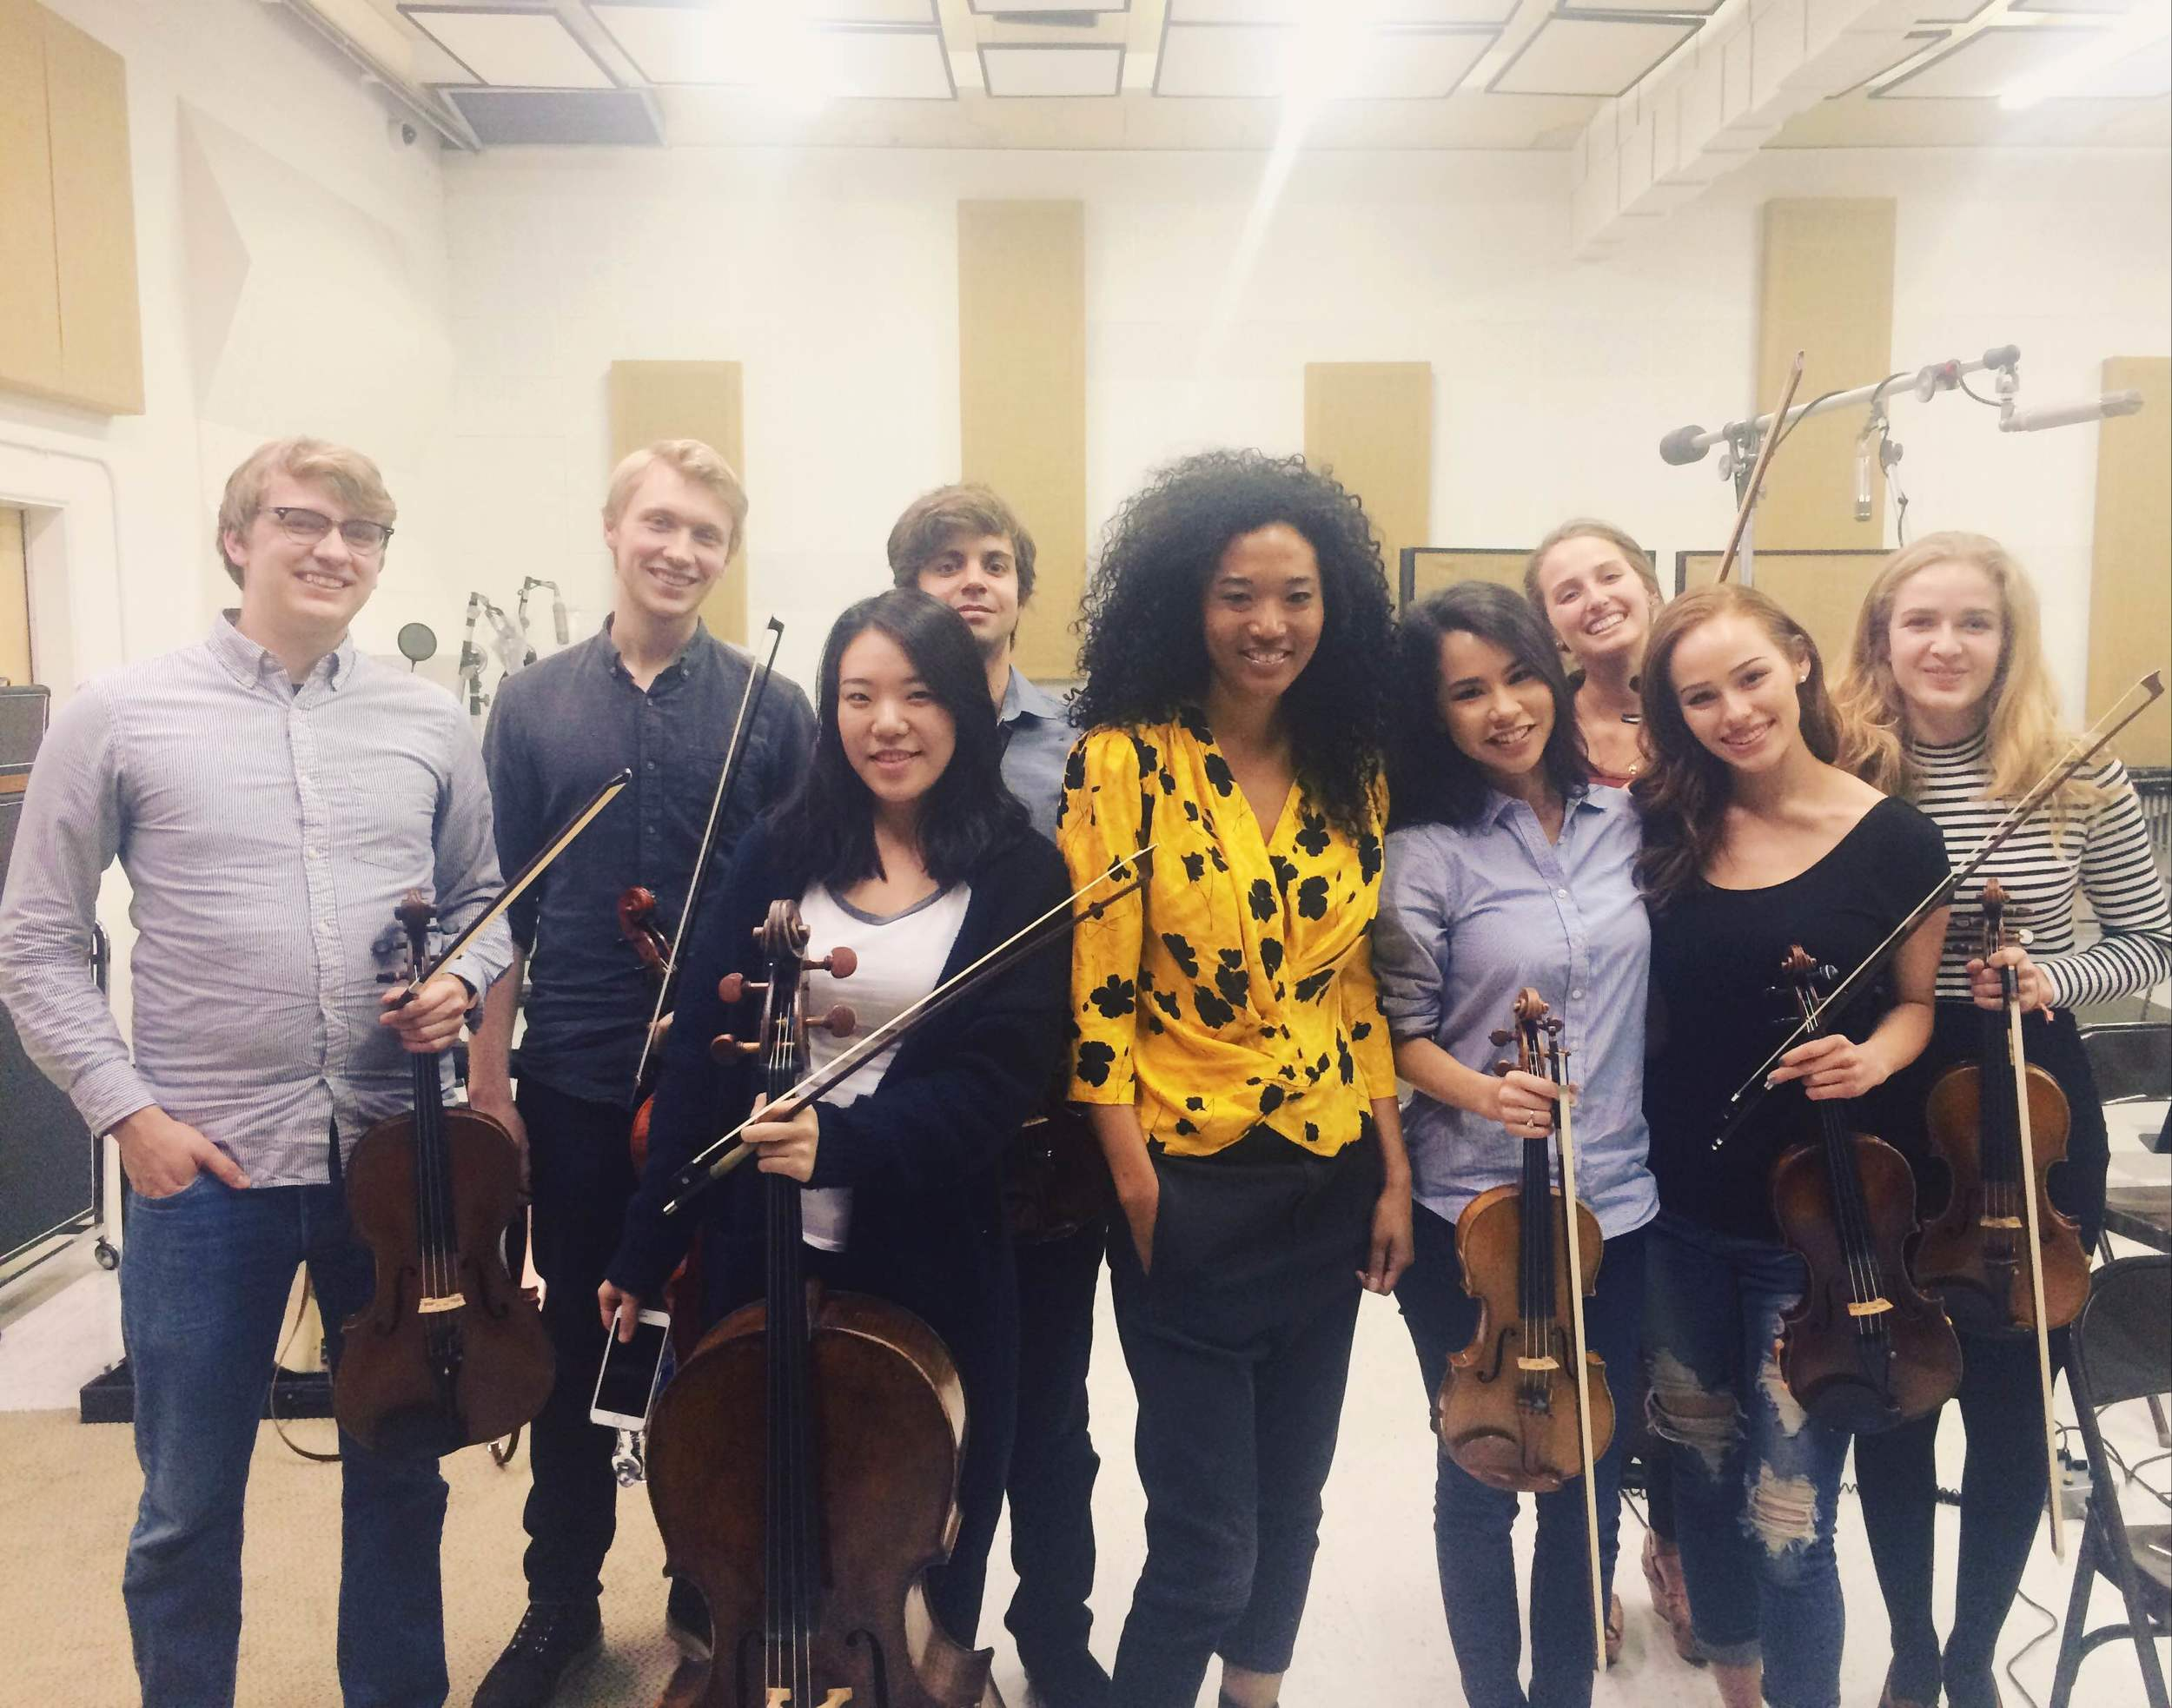 Post-recording session for singer Judith Hill  March 2016  · Van Nuys, CA